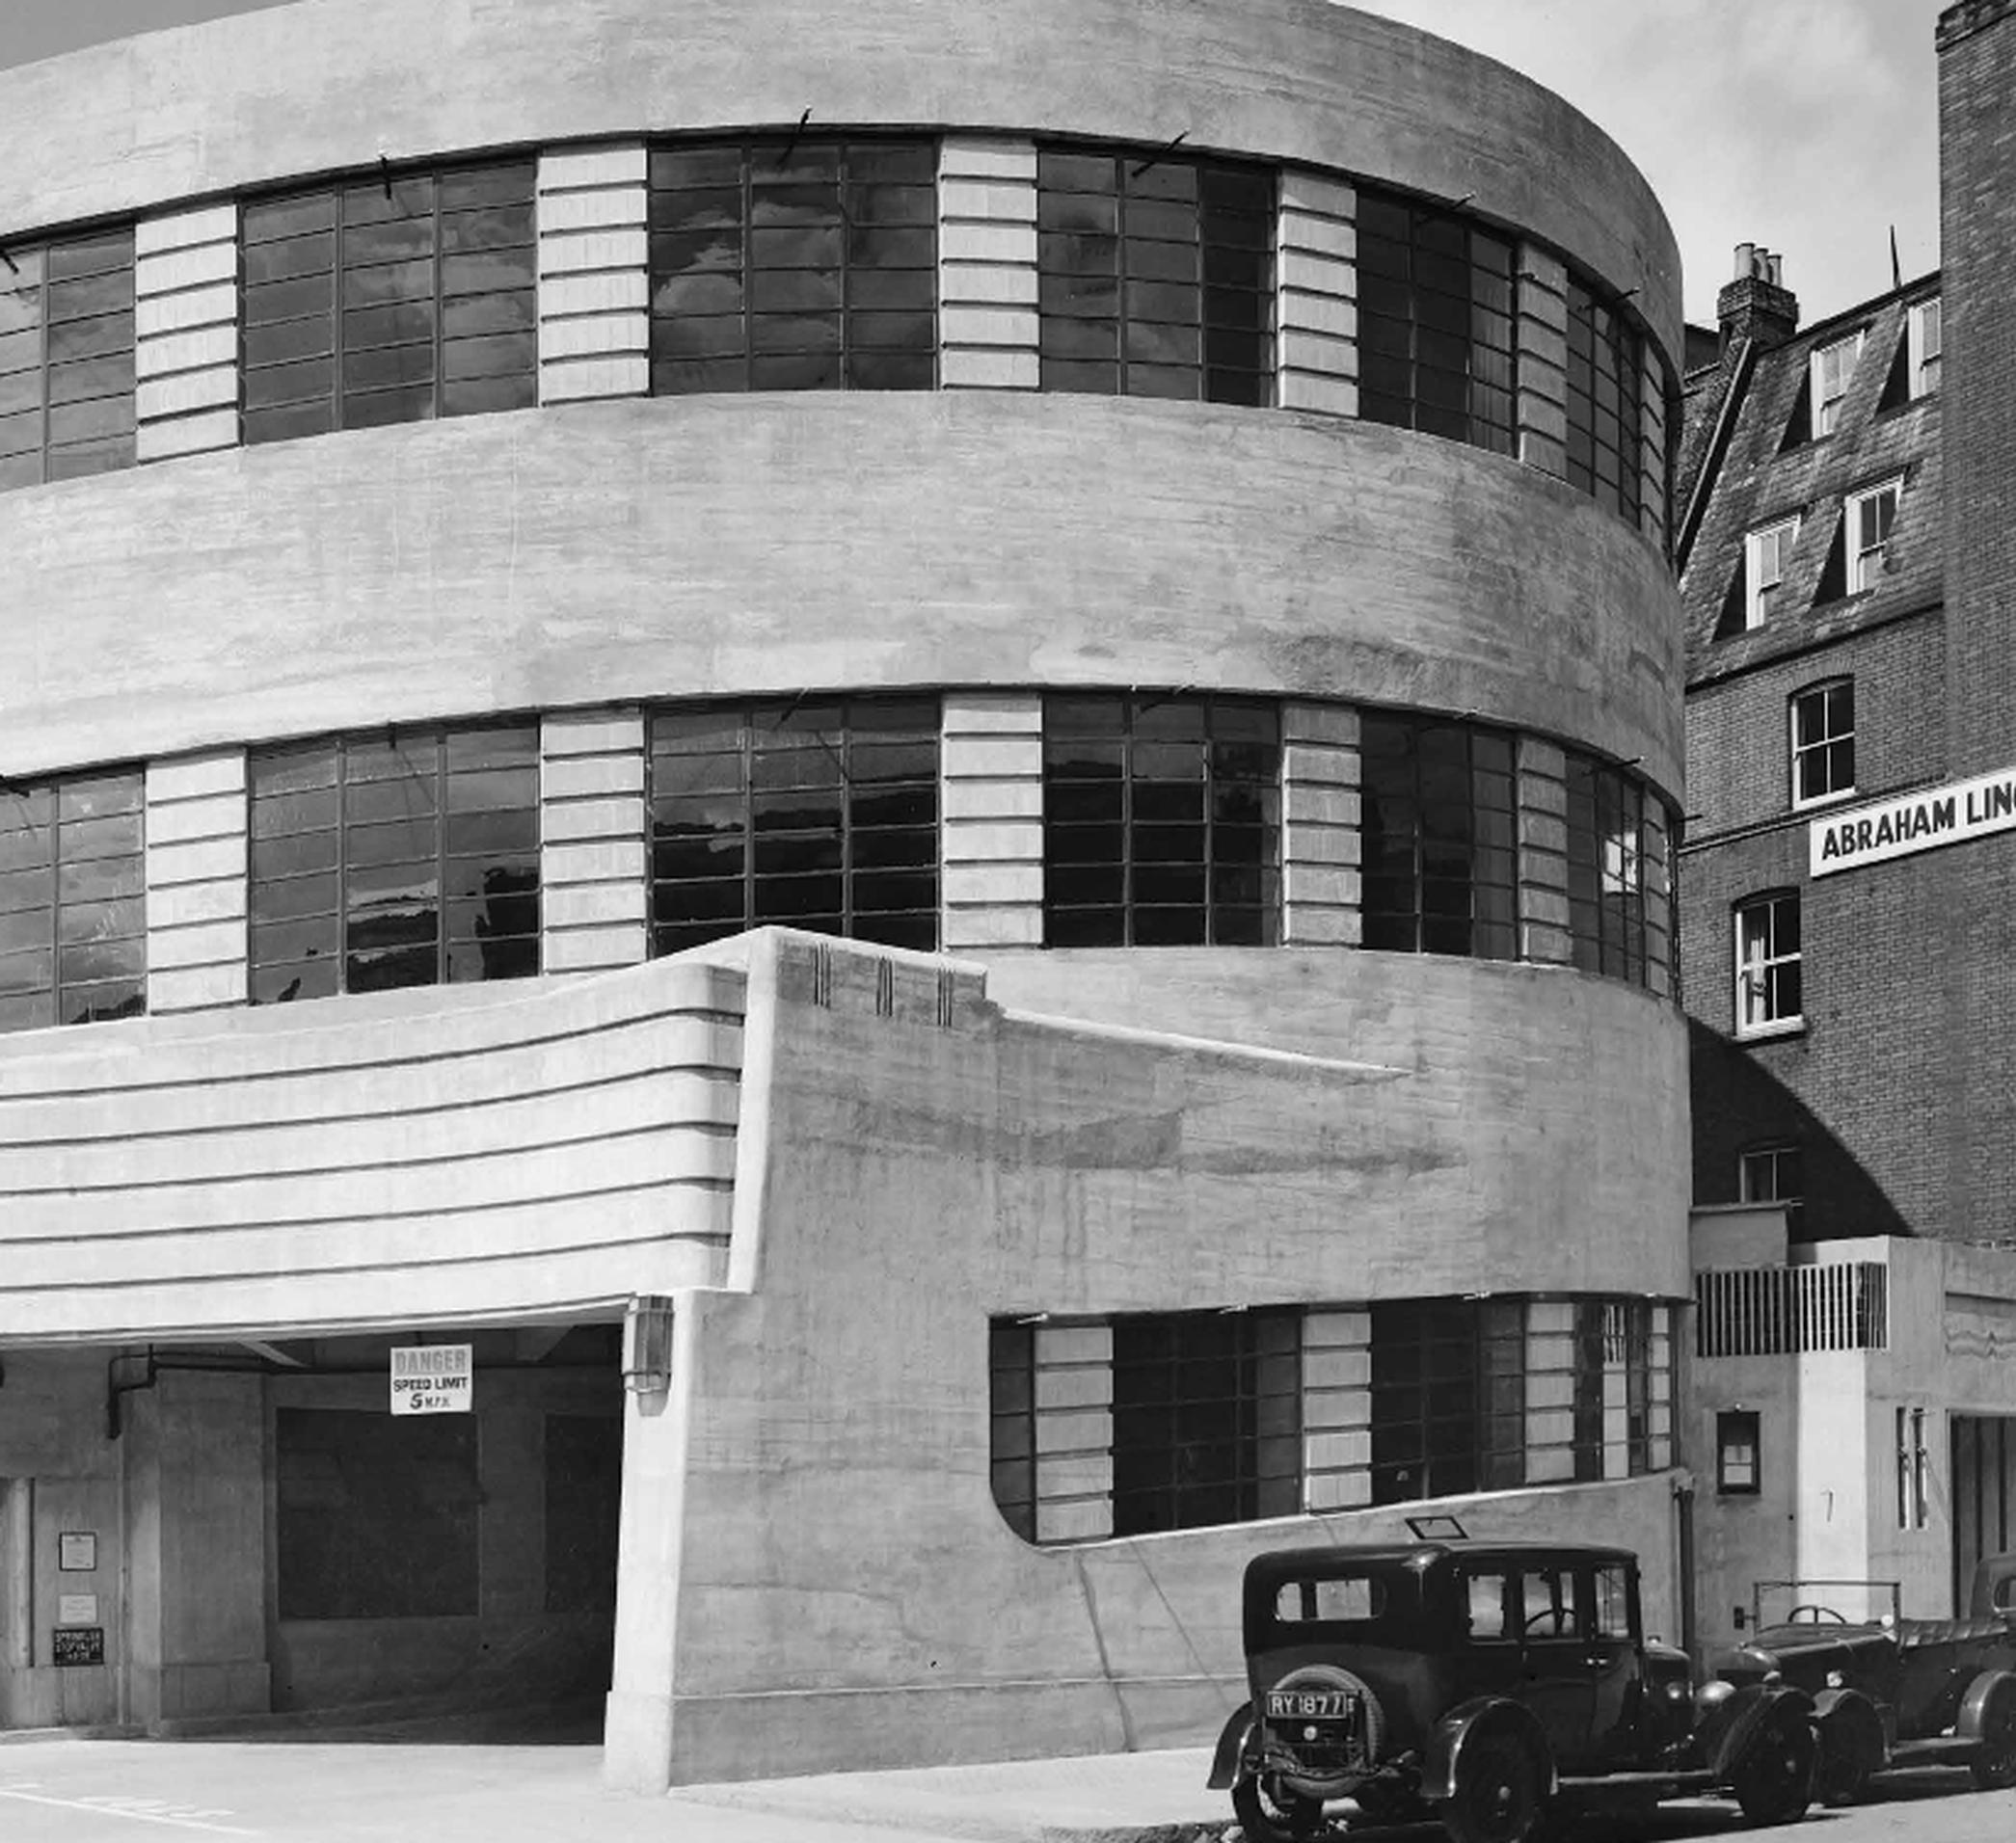 Deco elegance: The Daimler Garage on Herbrand Street, London, is one of the best-known modernist buildings in central London (1931-33; Wallis Gilbert & Partners). It was one of the first garages to be listed, at Grade II.